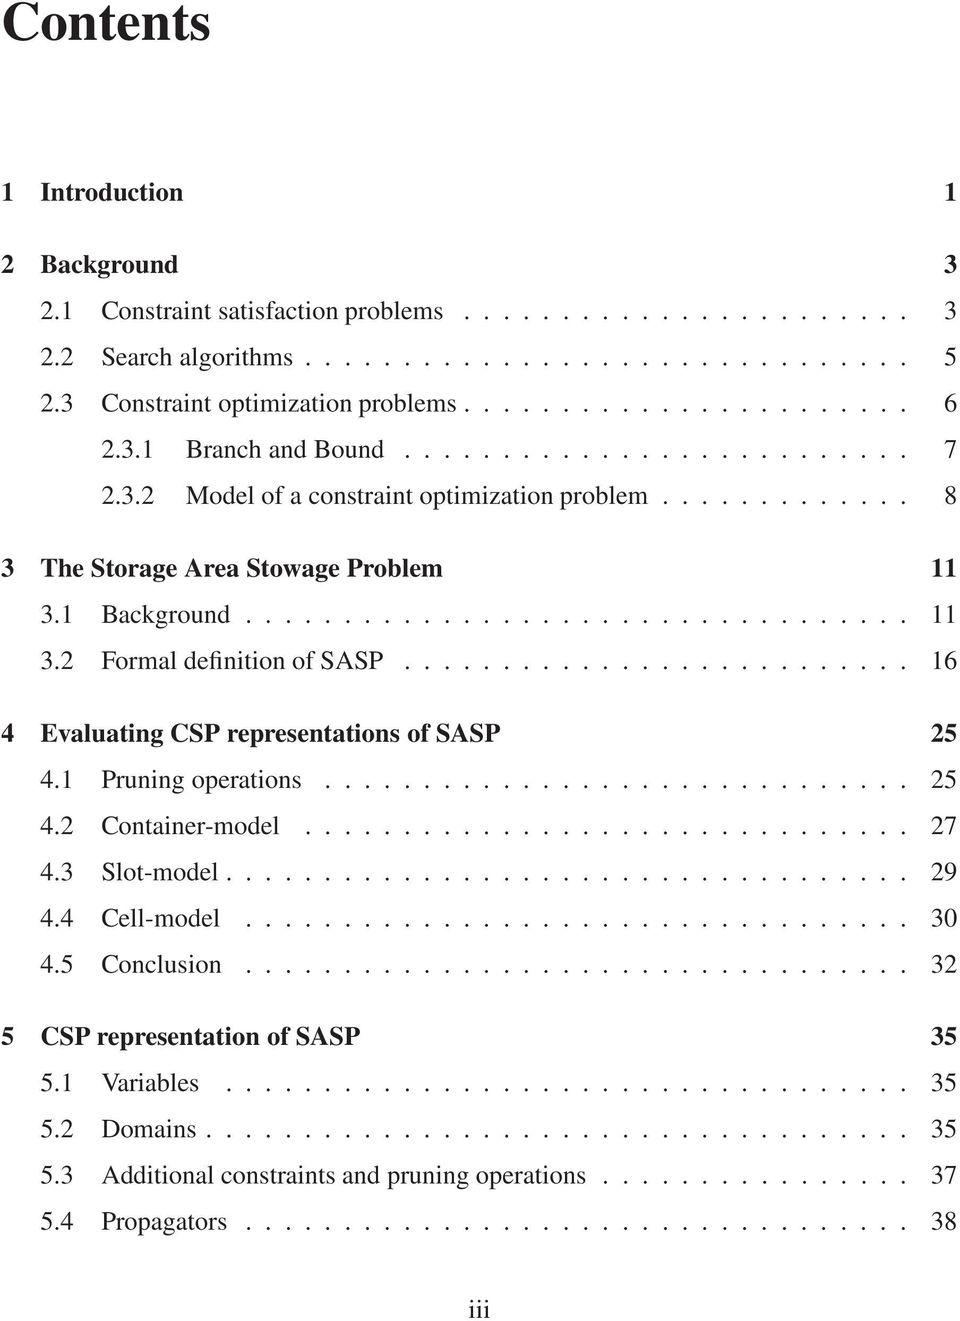 ......................... 16 4 Evaluating CSP representations of SASP 25 4.1 Pruning operations.............................. 25 4.2 Container-model............................... 27 4.3 Slot-model.